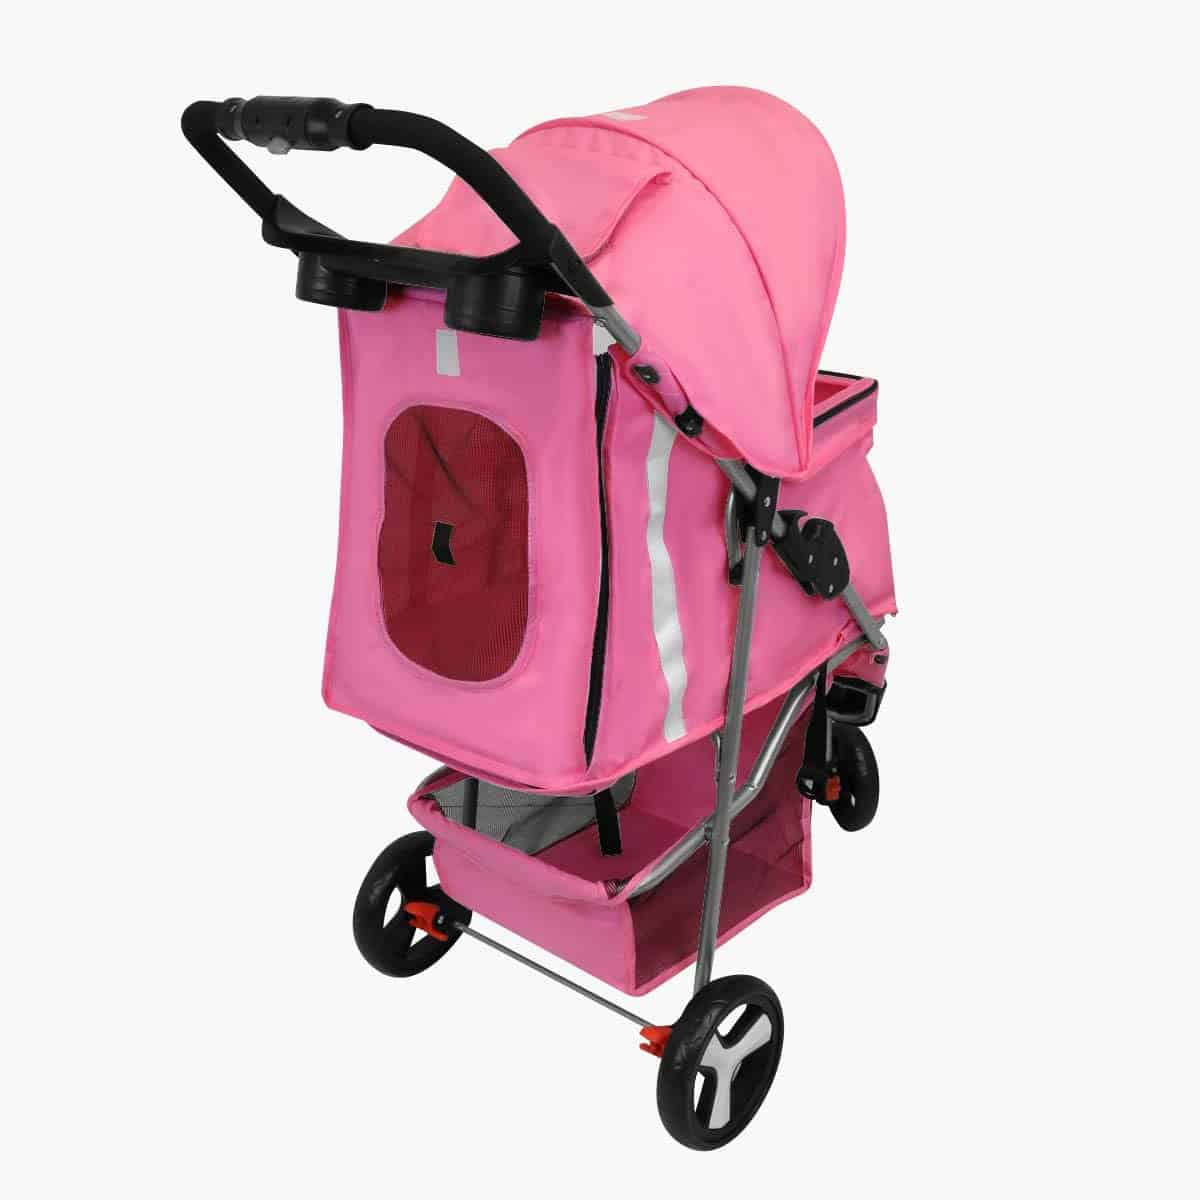 The Best Cat Stroller To Walk Your Cat in Comfort and Style 22